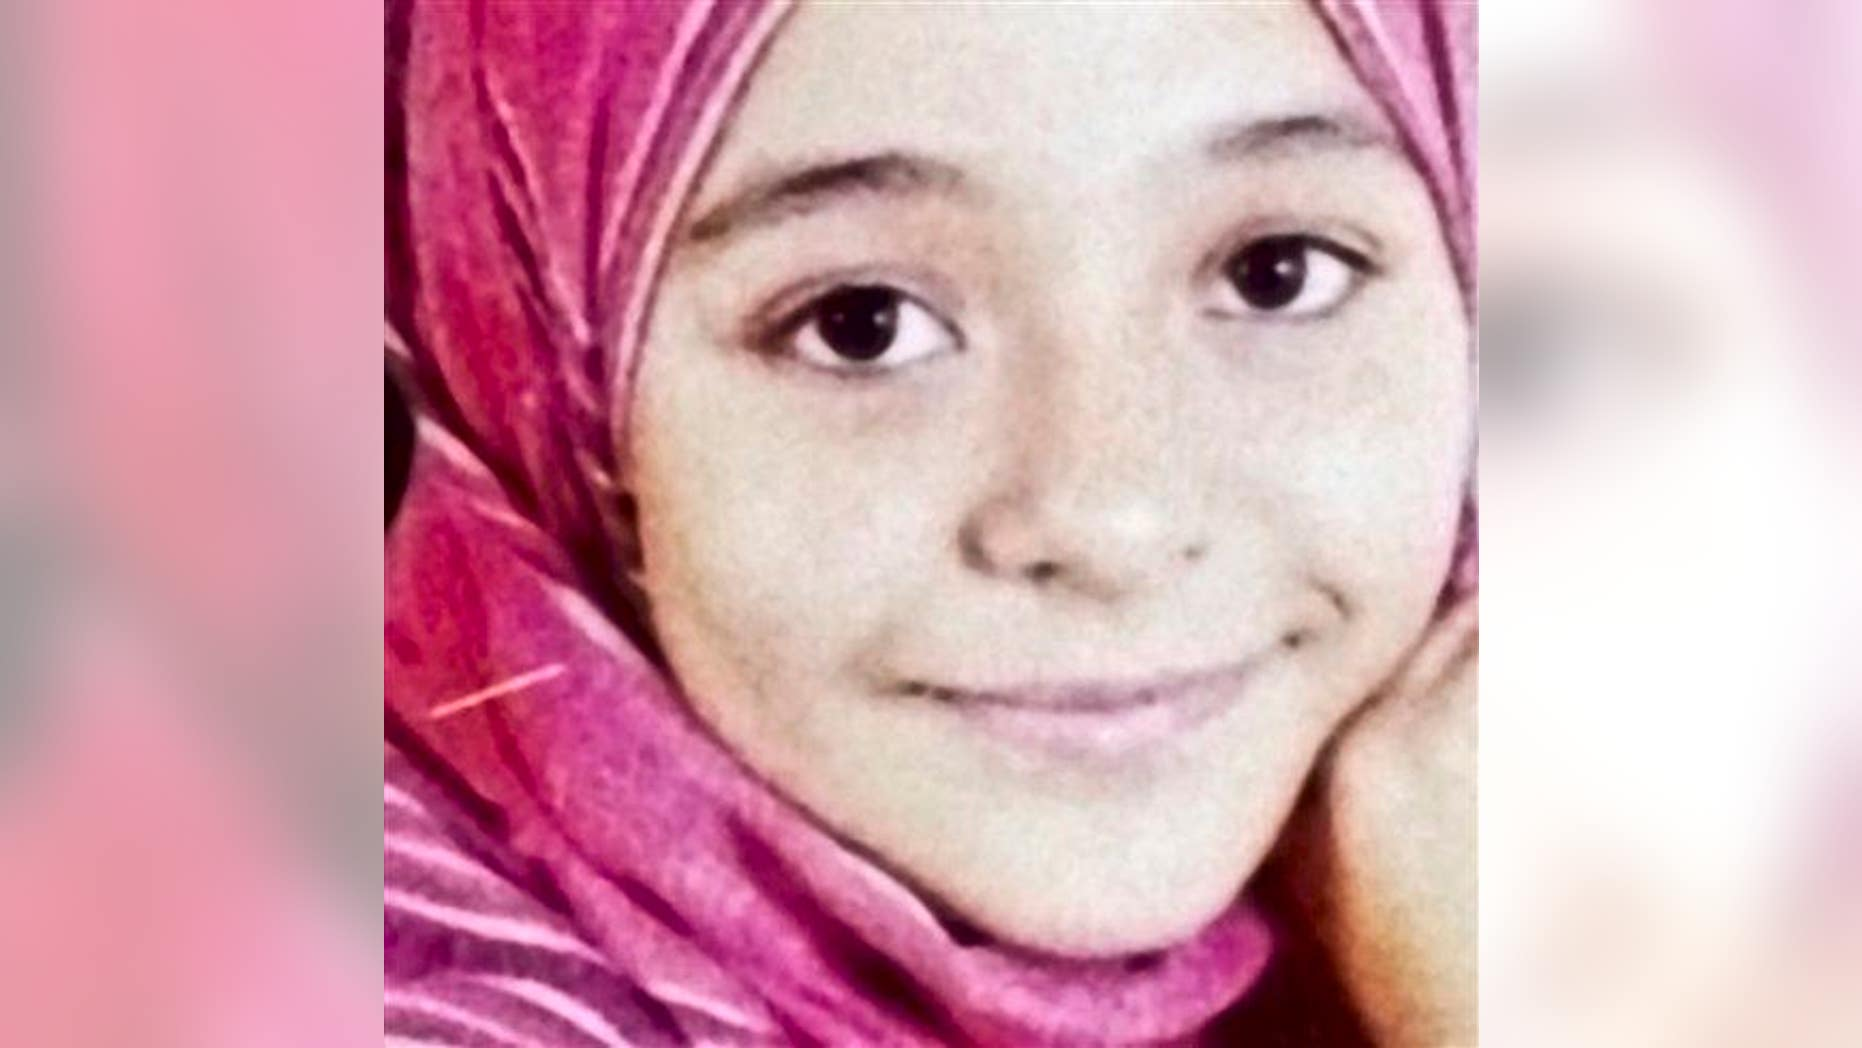 This undated file photo shows a portrait of Sohair el-Batea, who died last year after undergoing a female genital mutilation operation by Dr. Raslan Fadl, in Egypt.